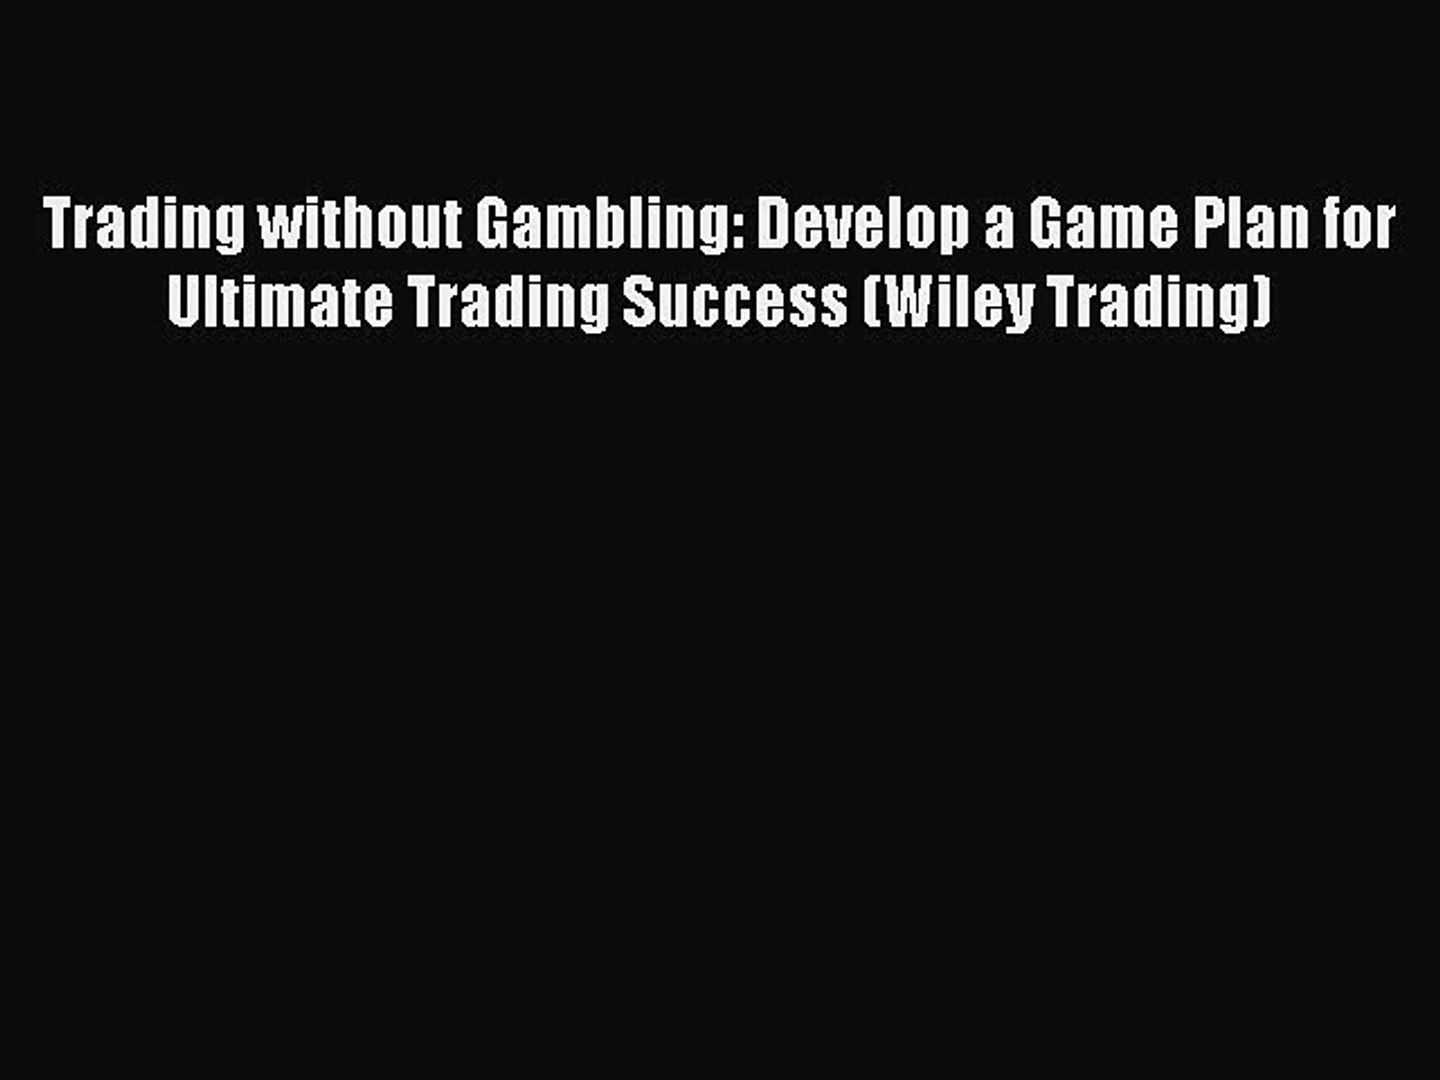 Read Trading without Gambling: Develop a Game Plan for Ultimate Trading Success (Wiley Trading)